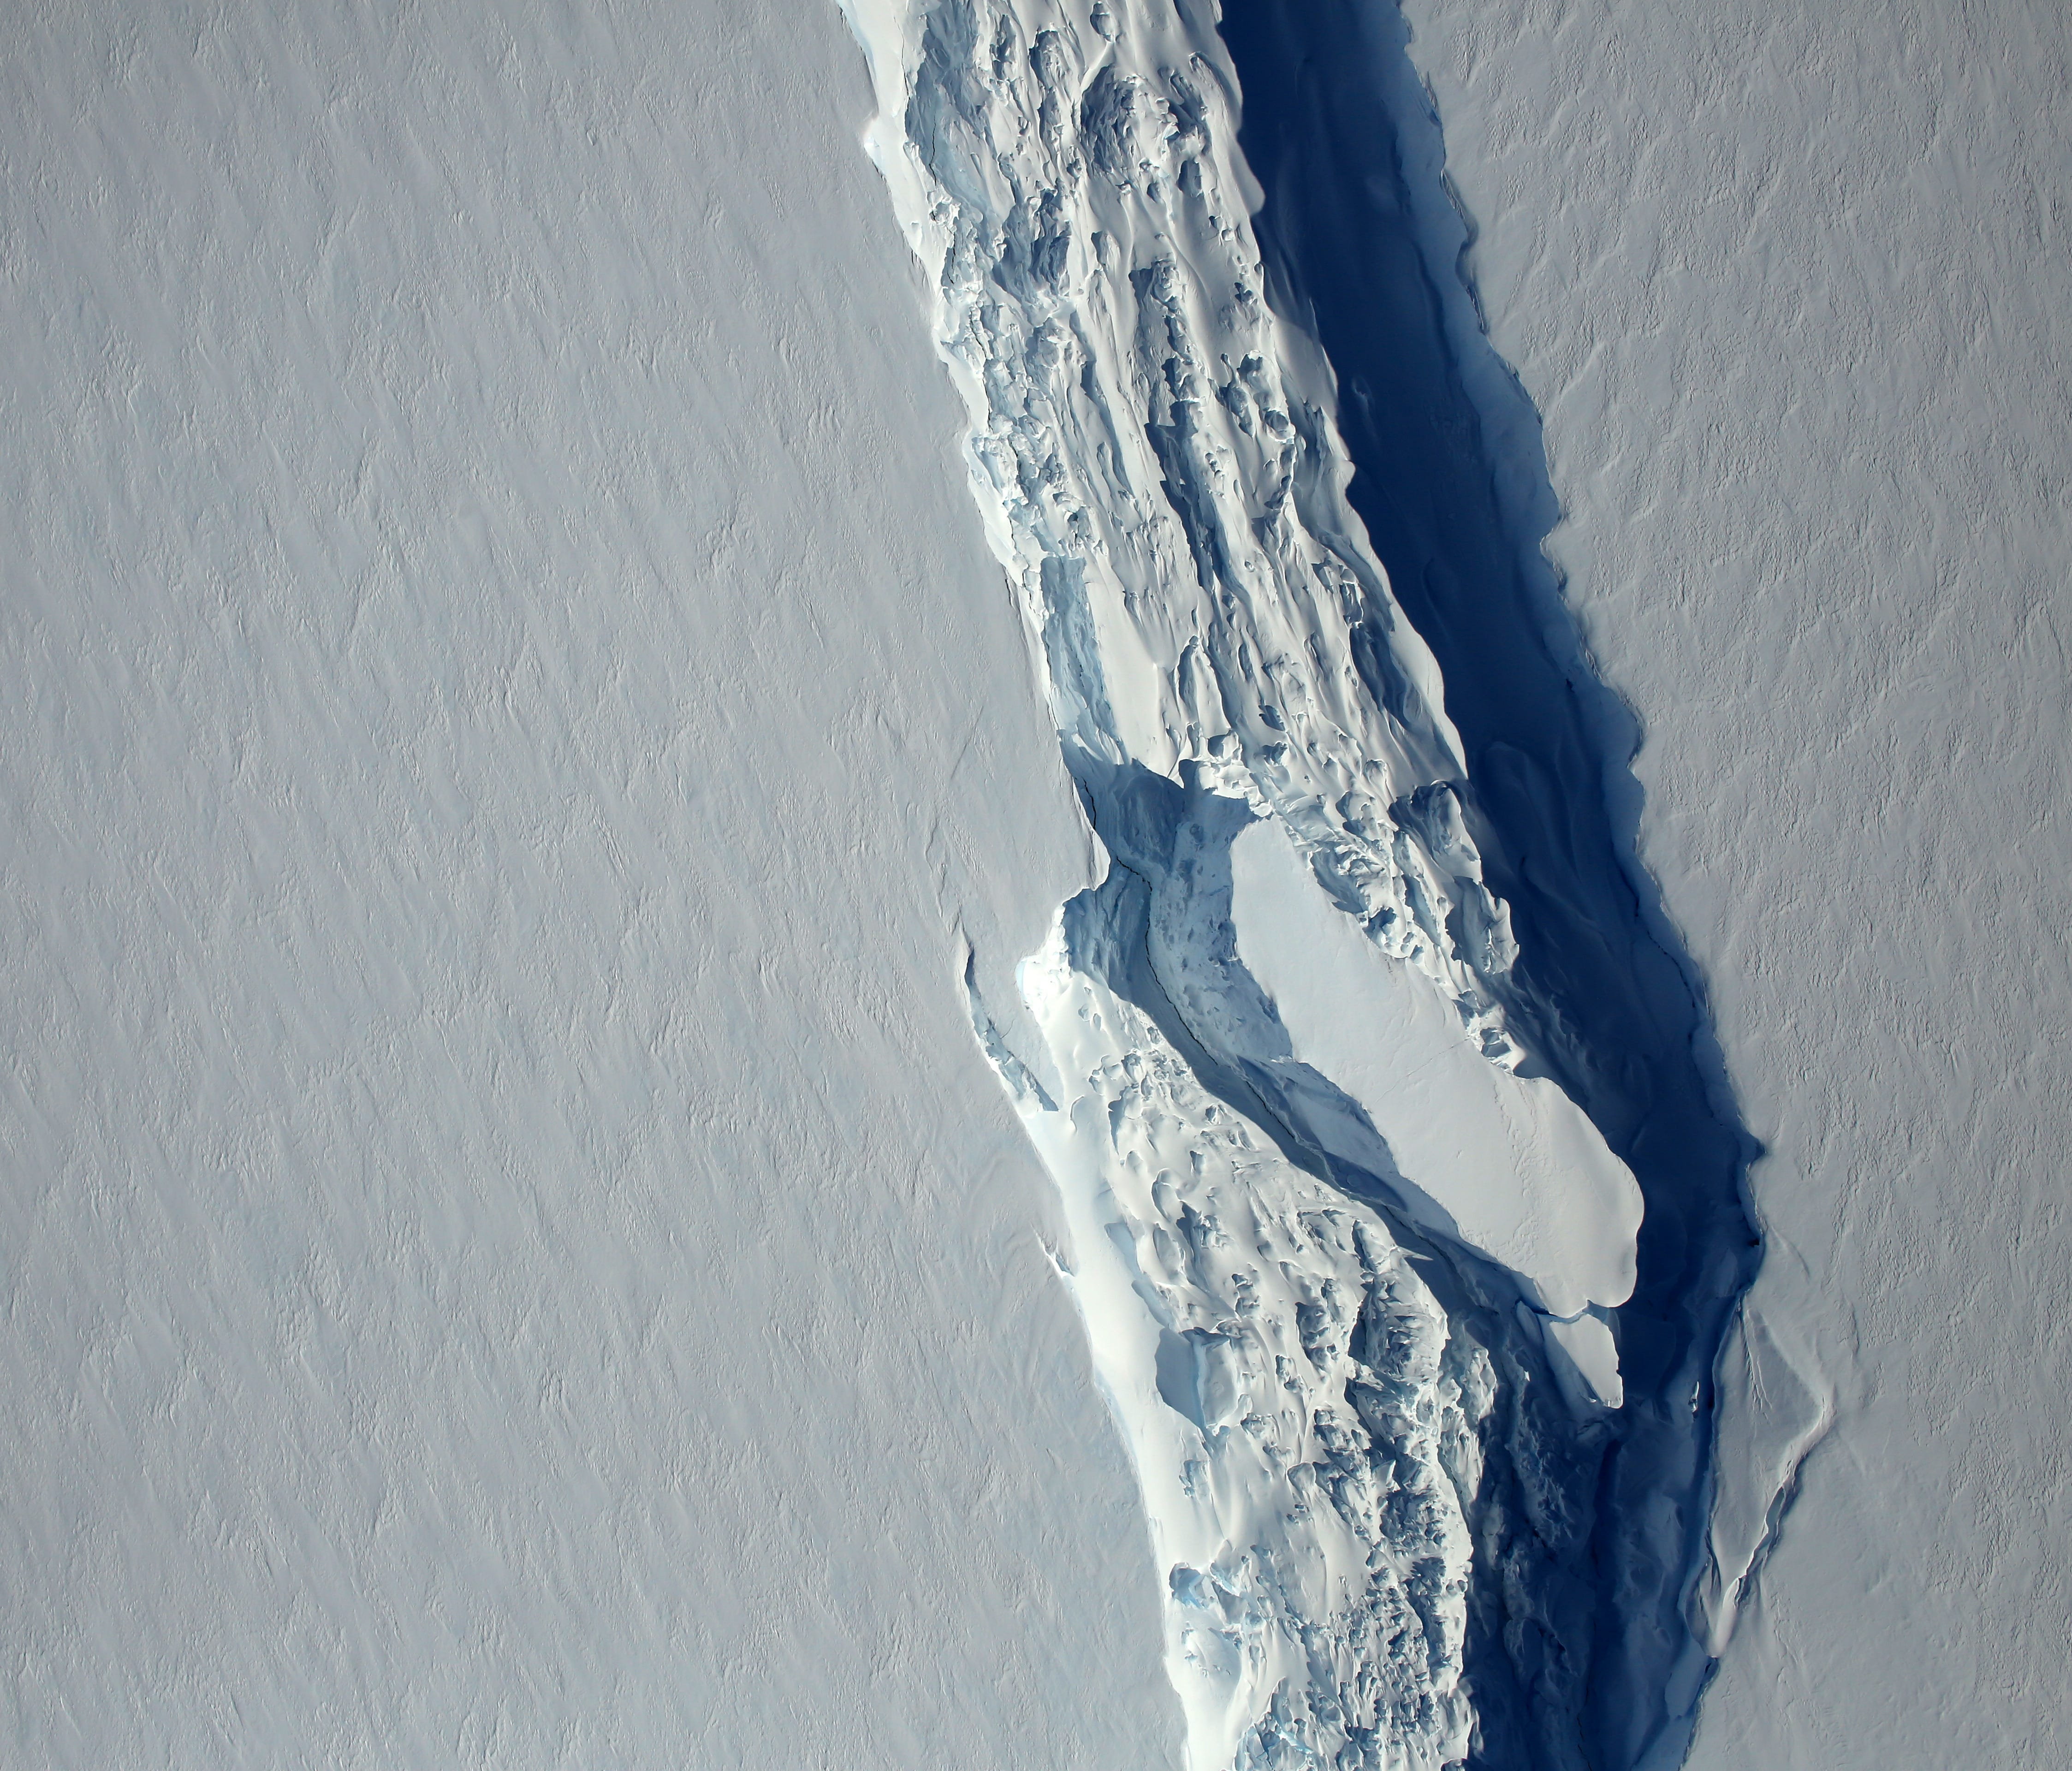 A close-up view of the crack, or rift, in Antarctica's Larsen C ice shelf, as seen on Nov. 10, 2016.